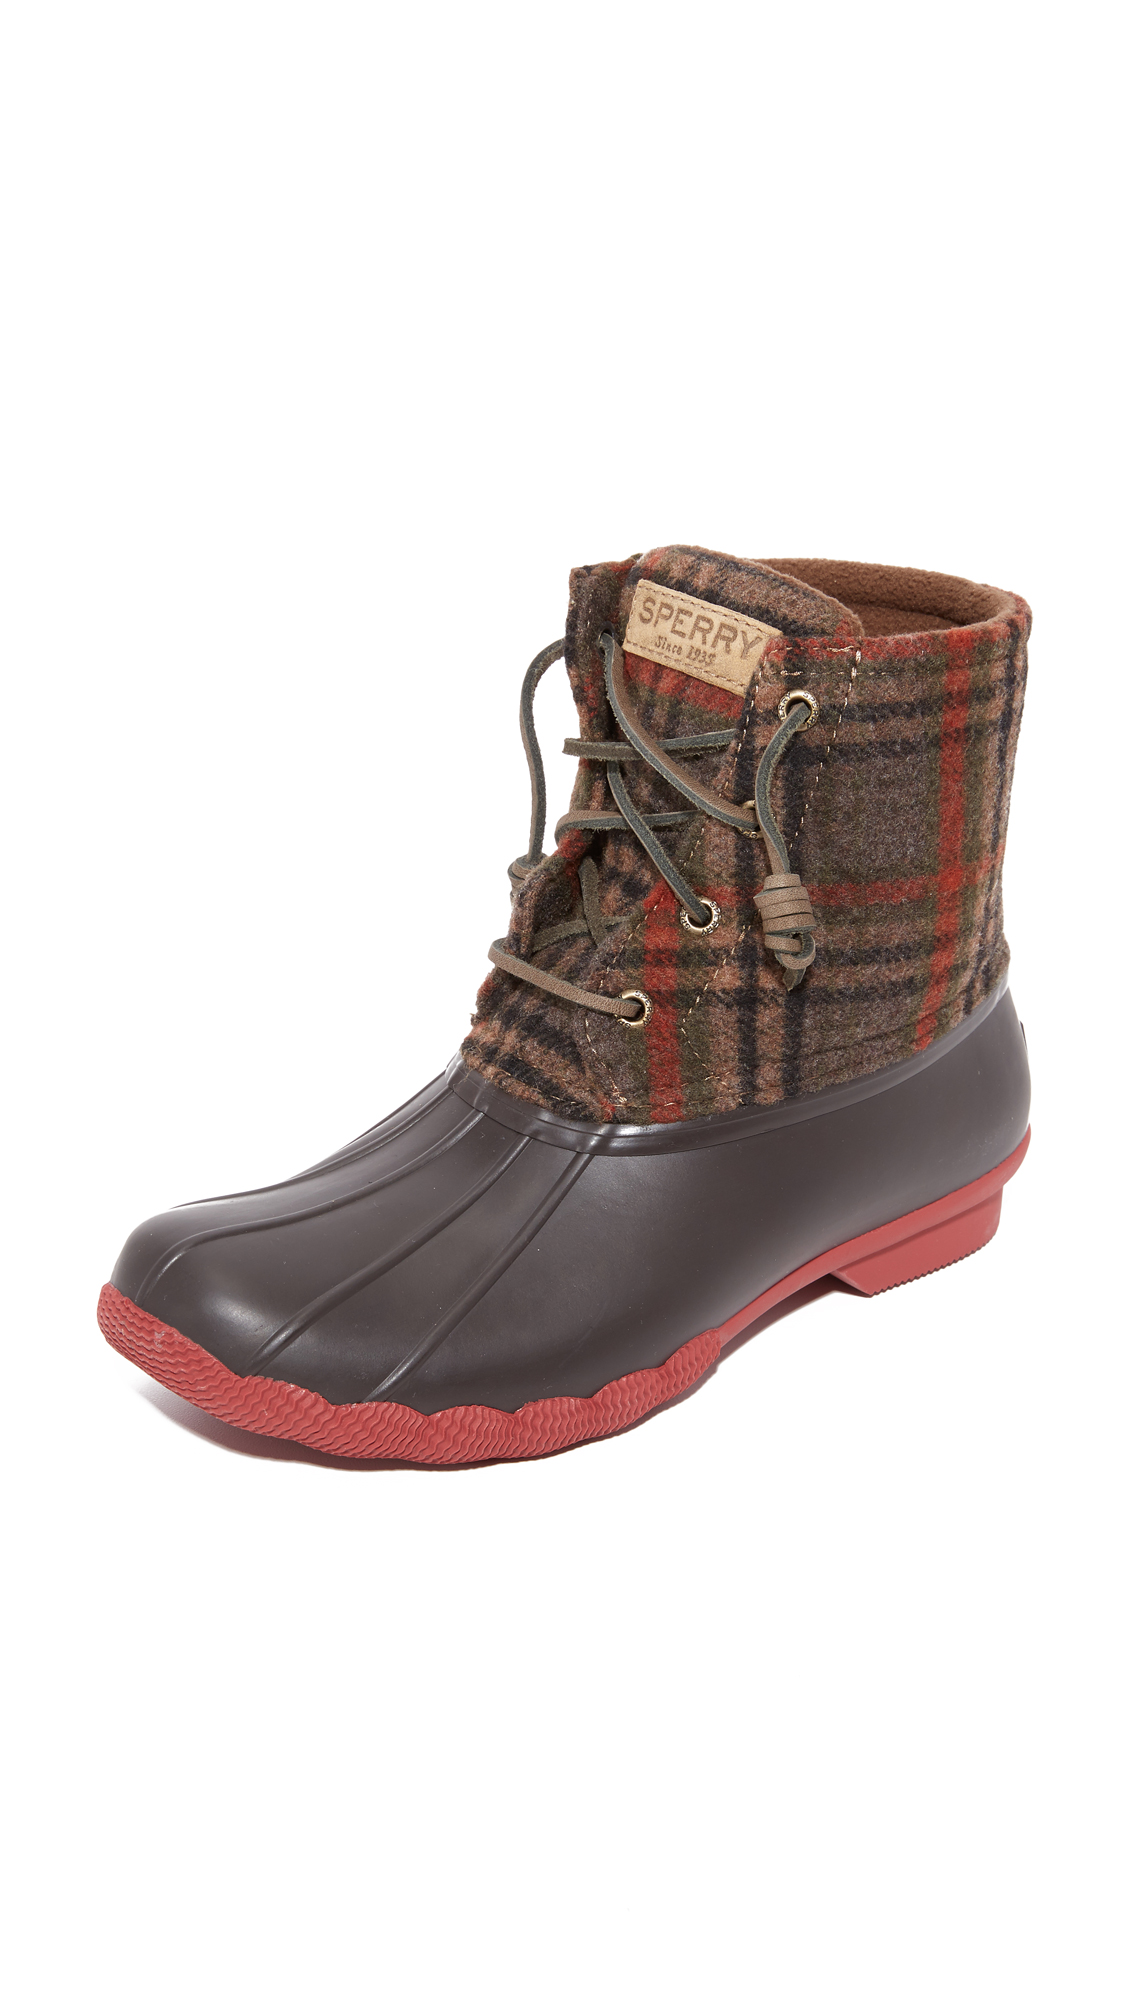 sperry female sperry saltwater prints booties brownwool plaid